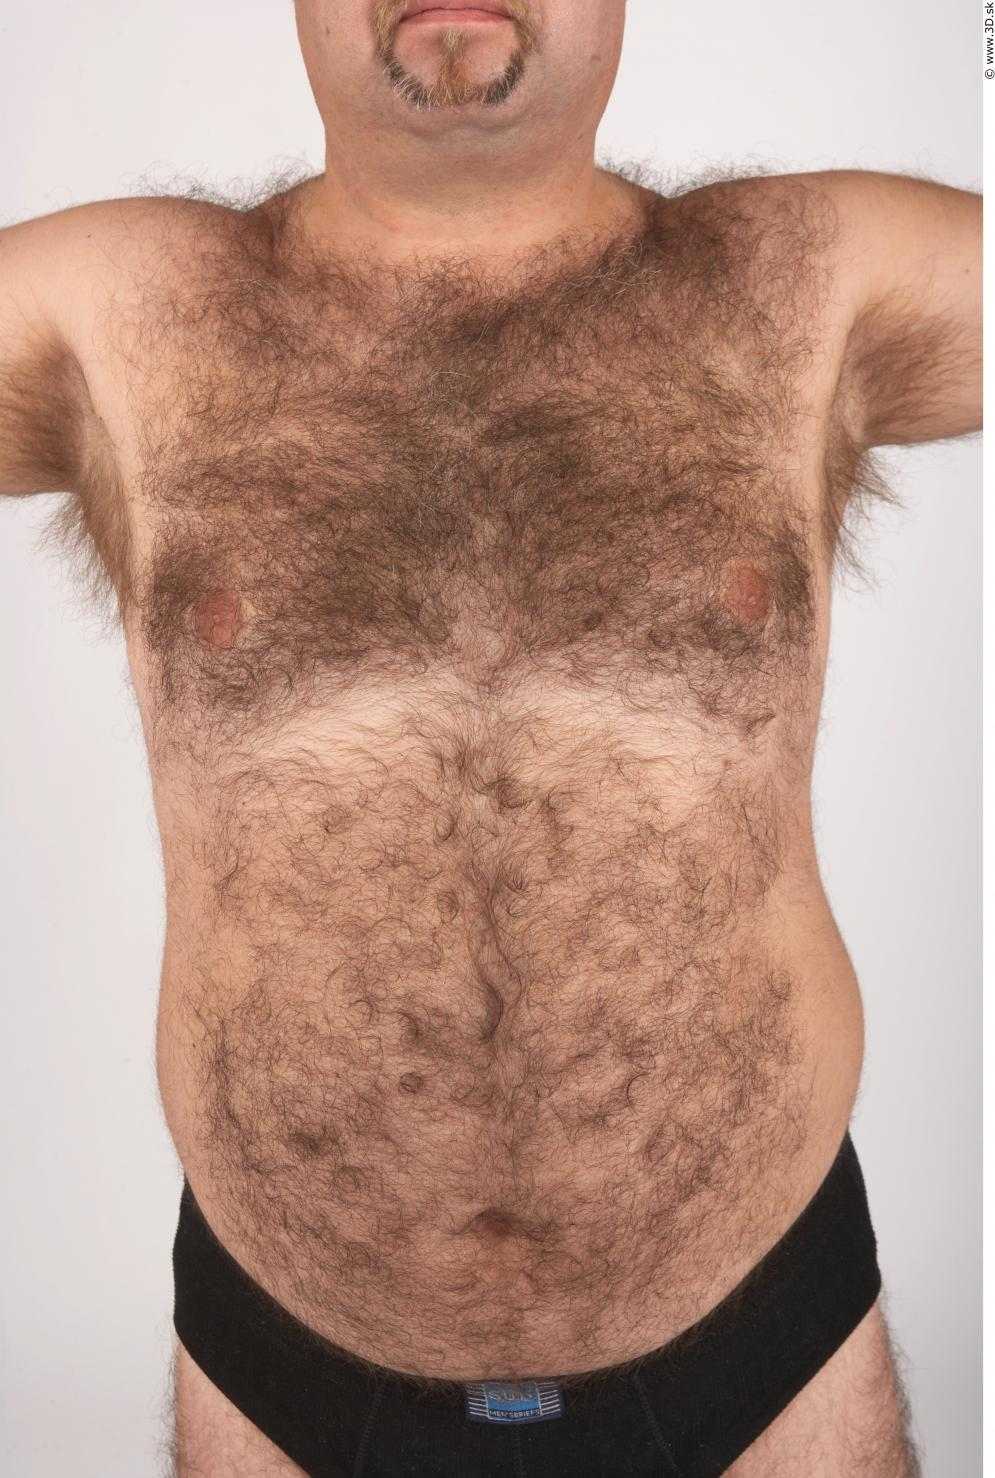 Image from Matej - Hairy male photo refences from 3D.sk - 288537matej_0095.jpg